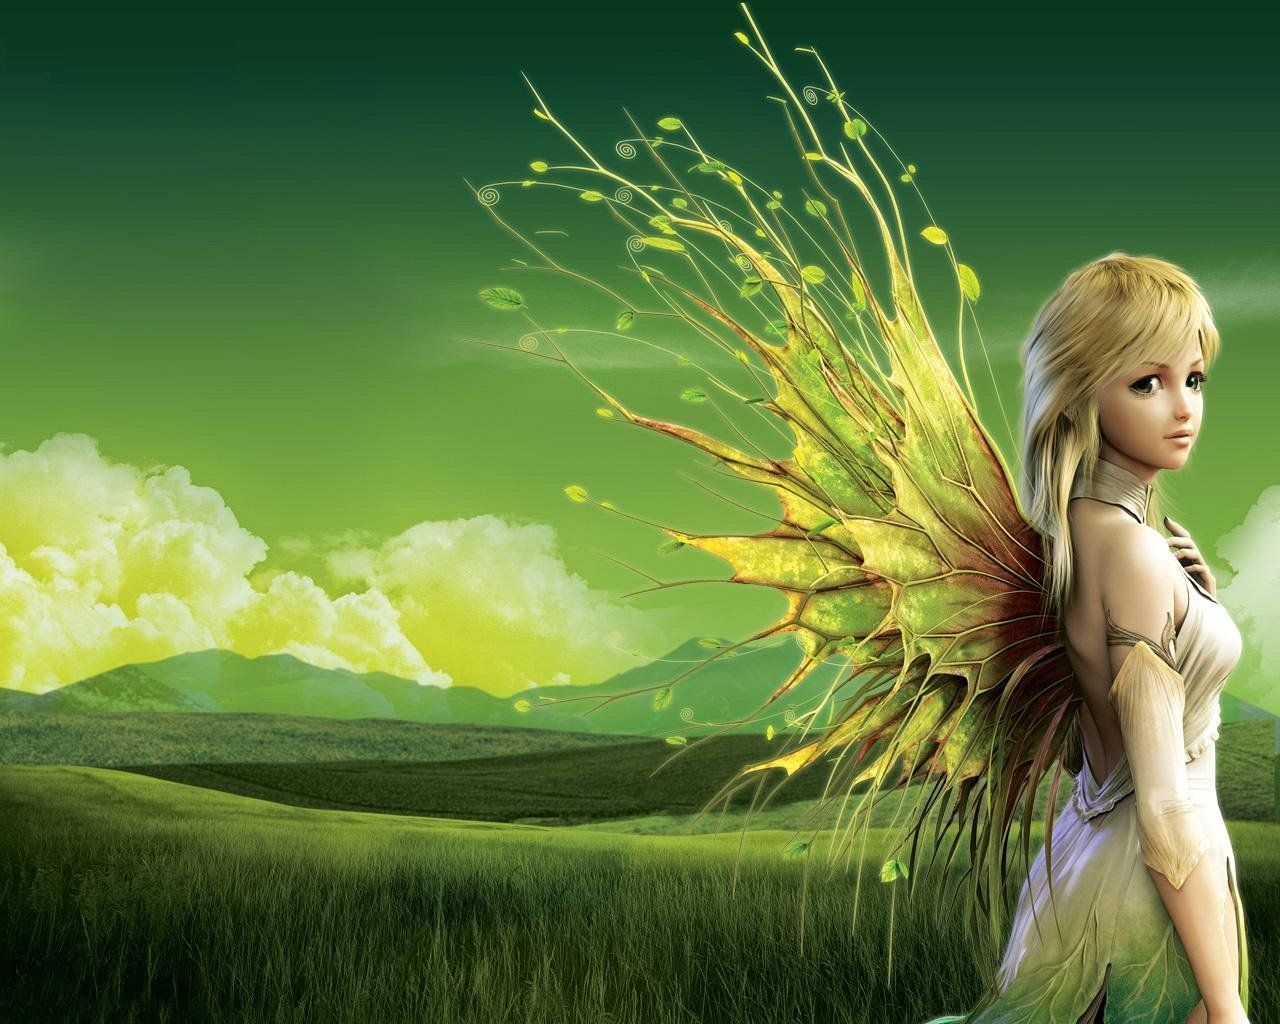 1280x1024 - Fairy Wallpapers 20